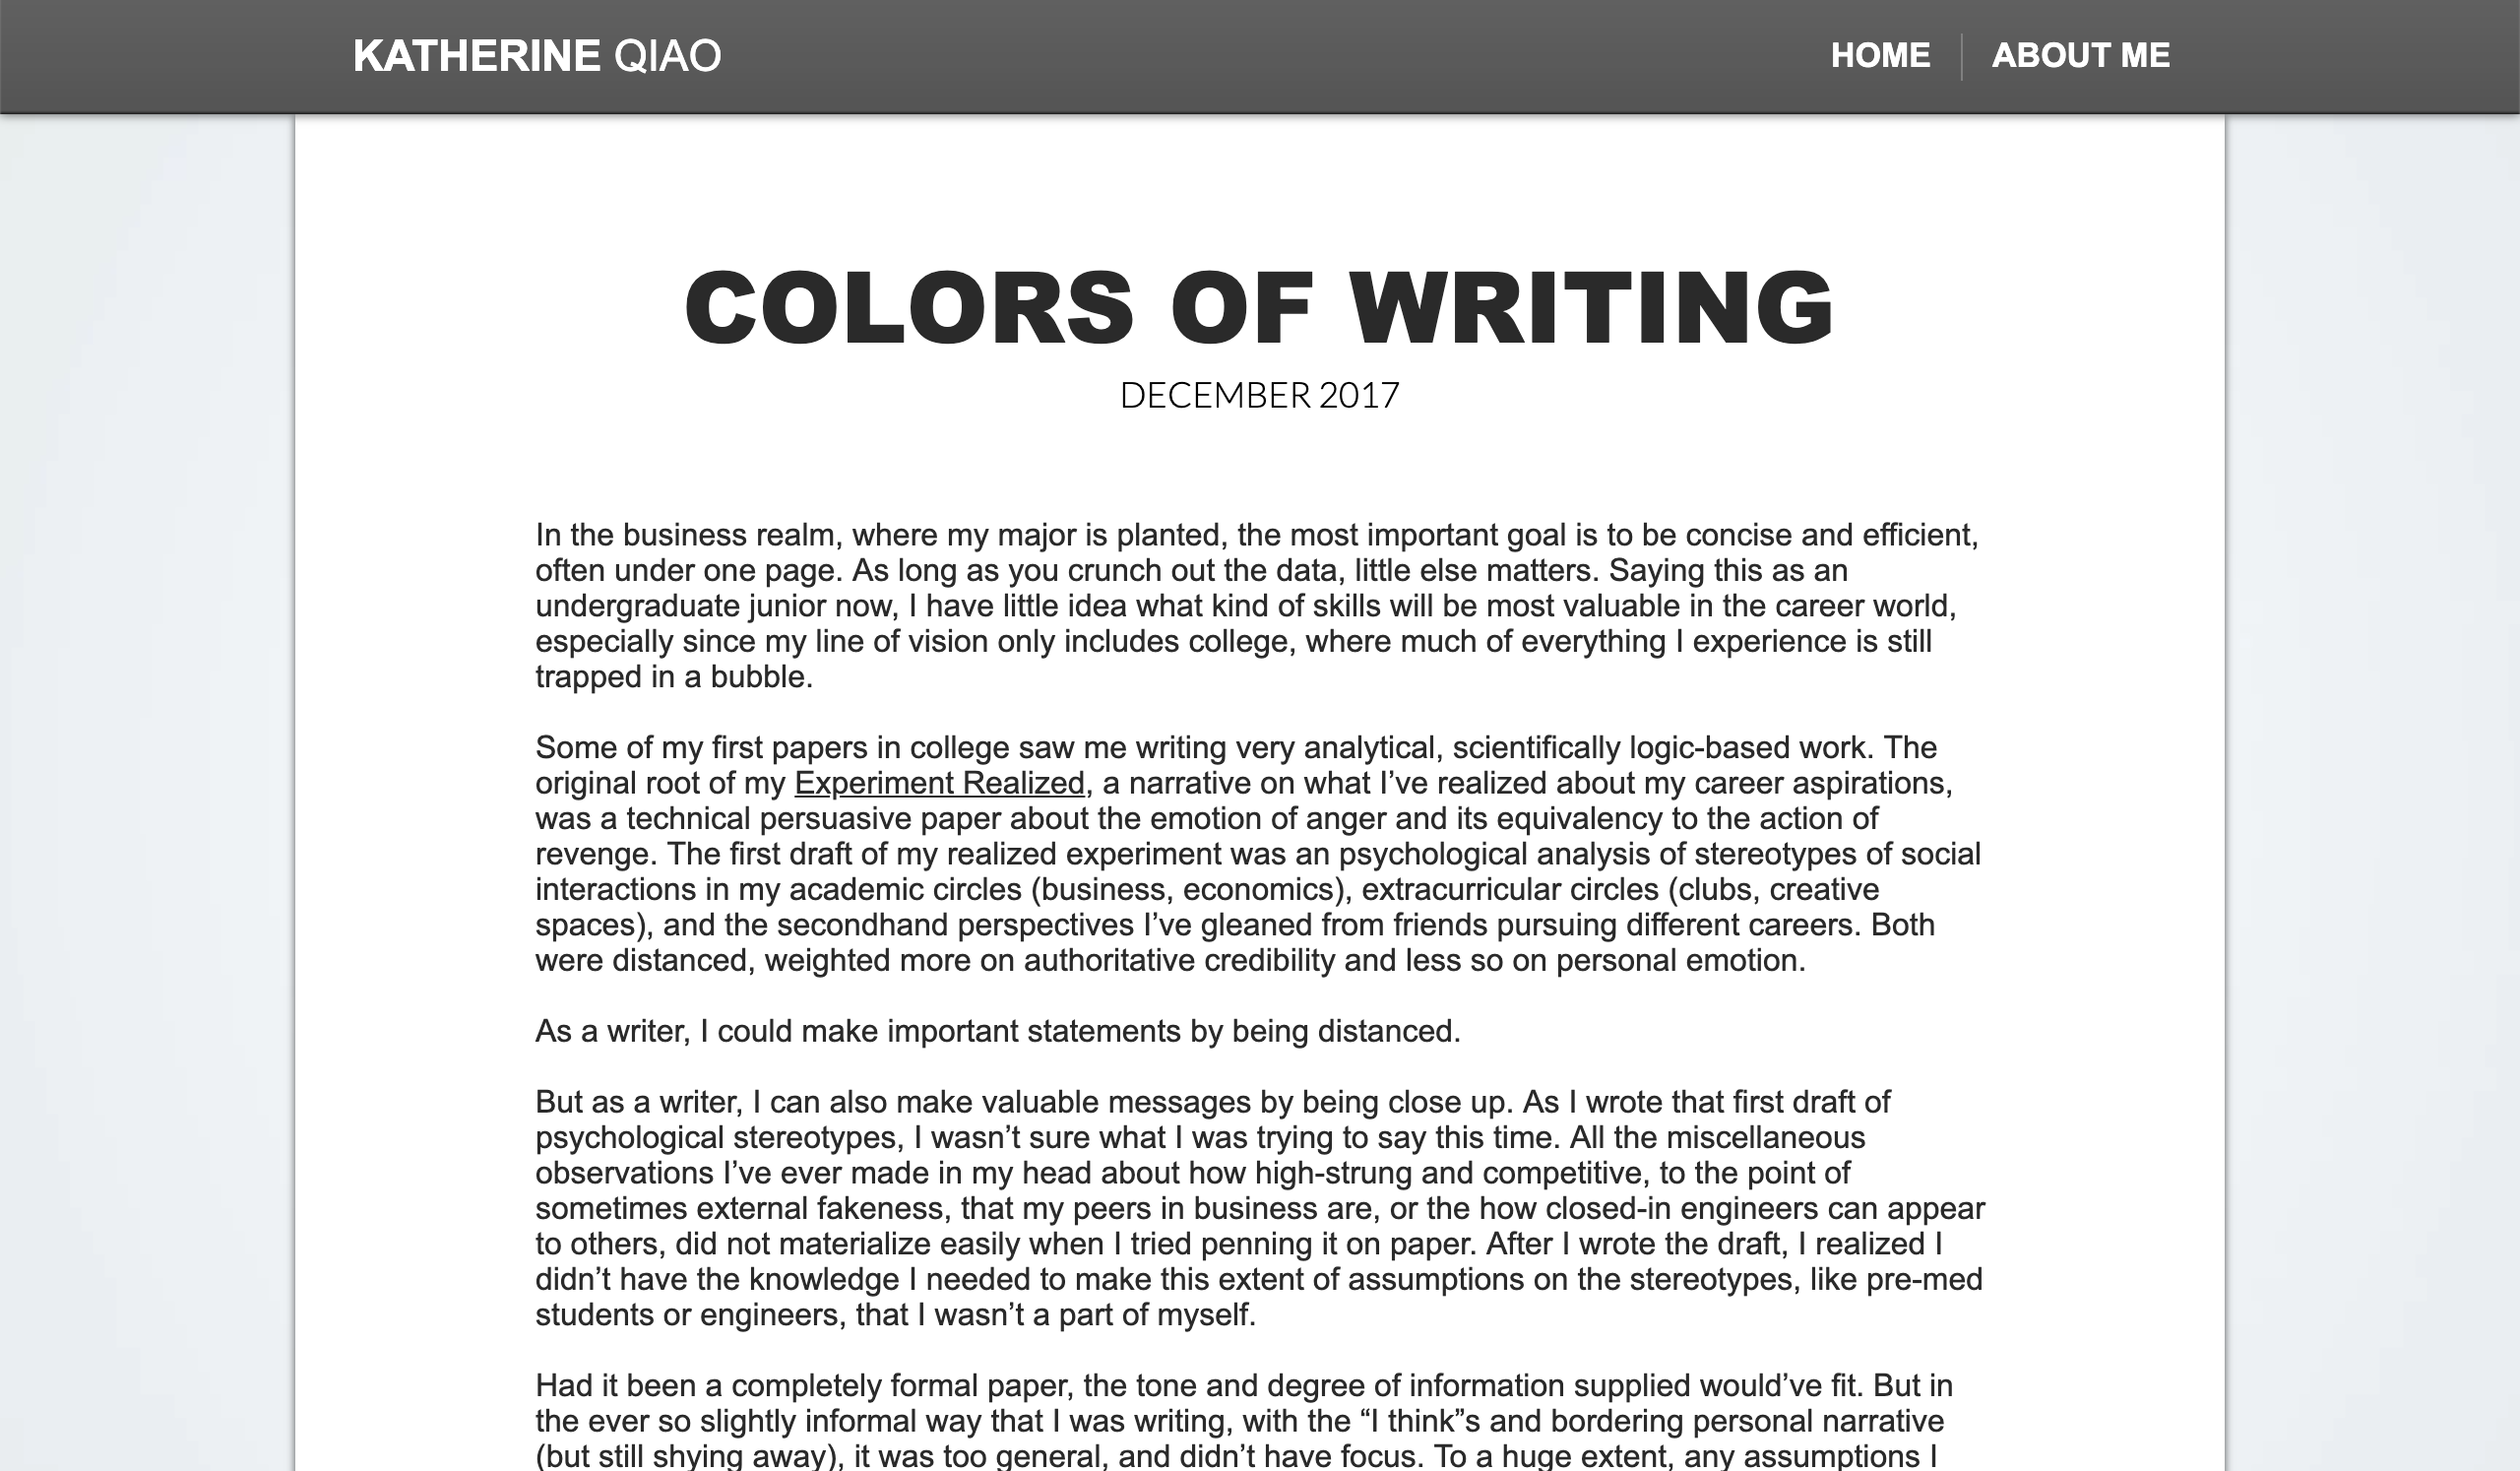 COLORS OF WRITING